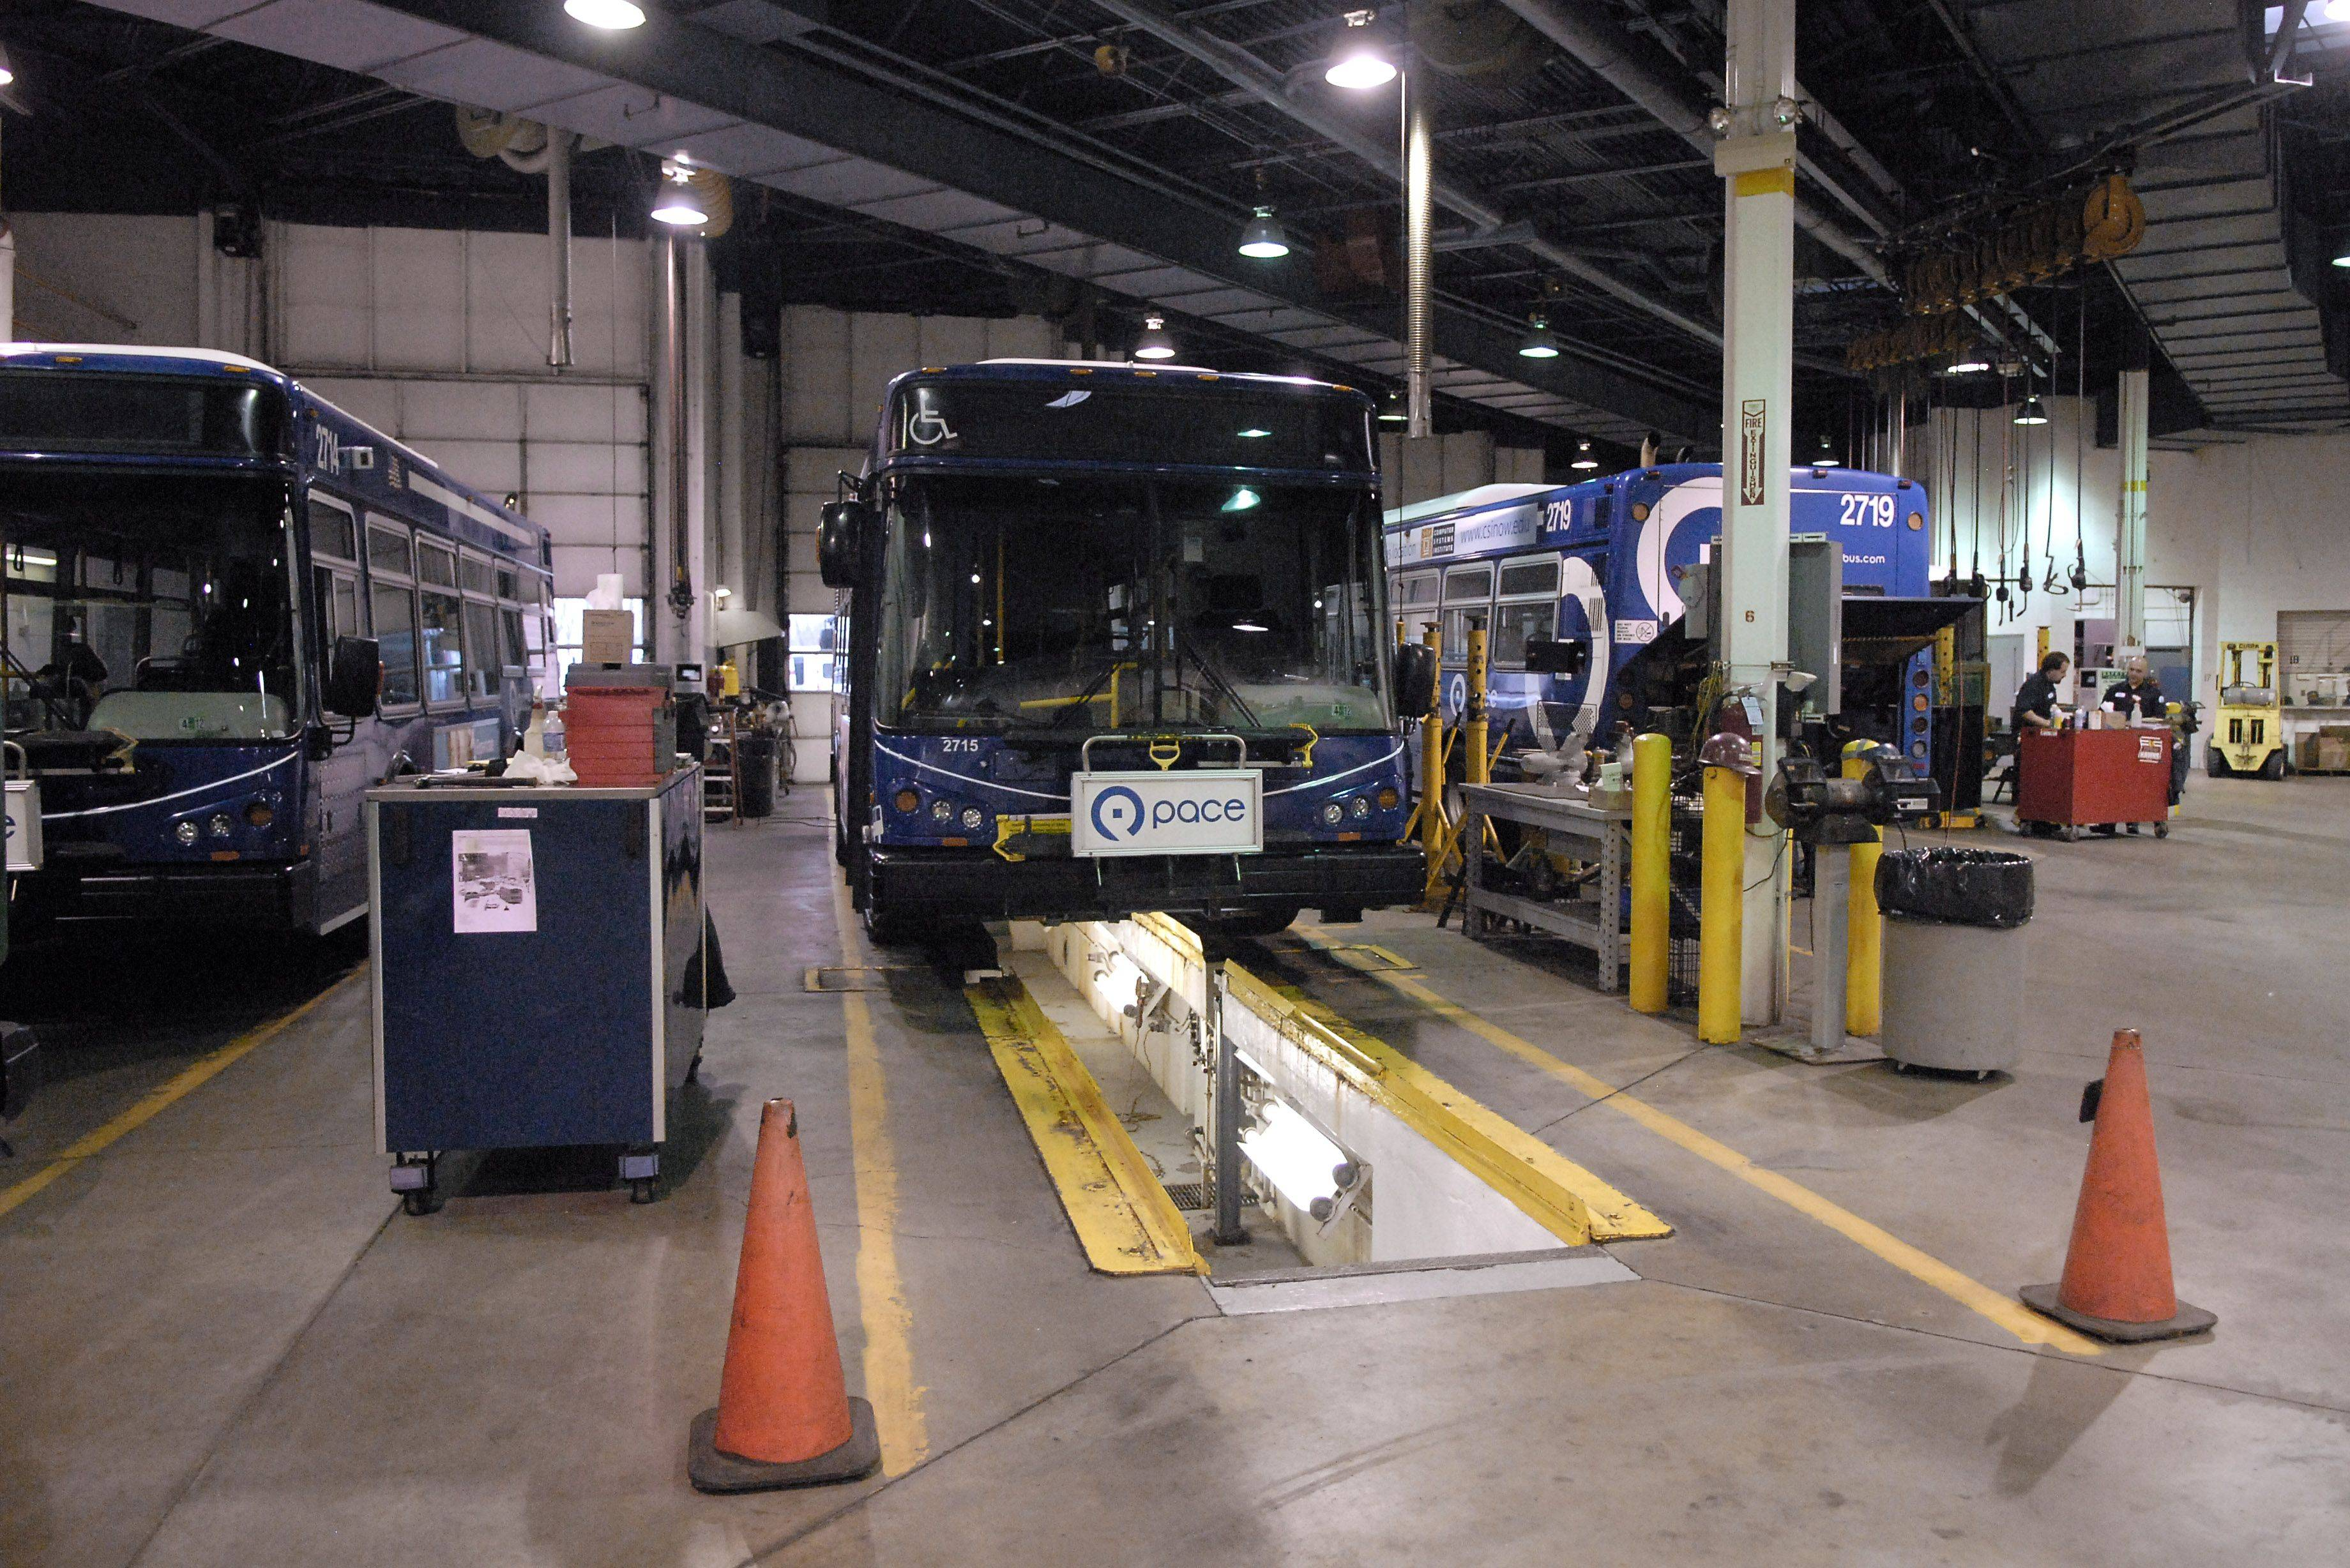 The Pace bus garage in Elgin has five service bays, with one of them having lower access to change fluids. The garage has six mechanics who work on three staggered shifts throughout the day.